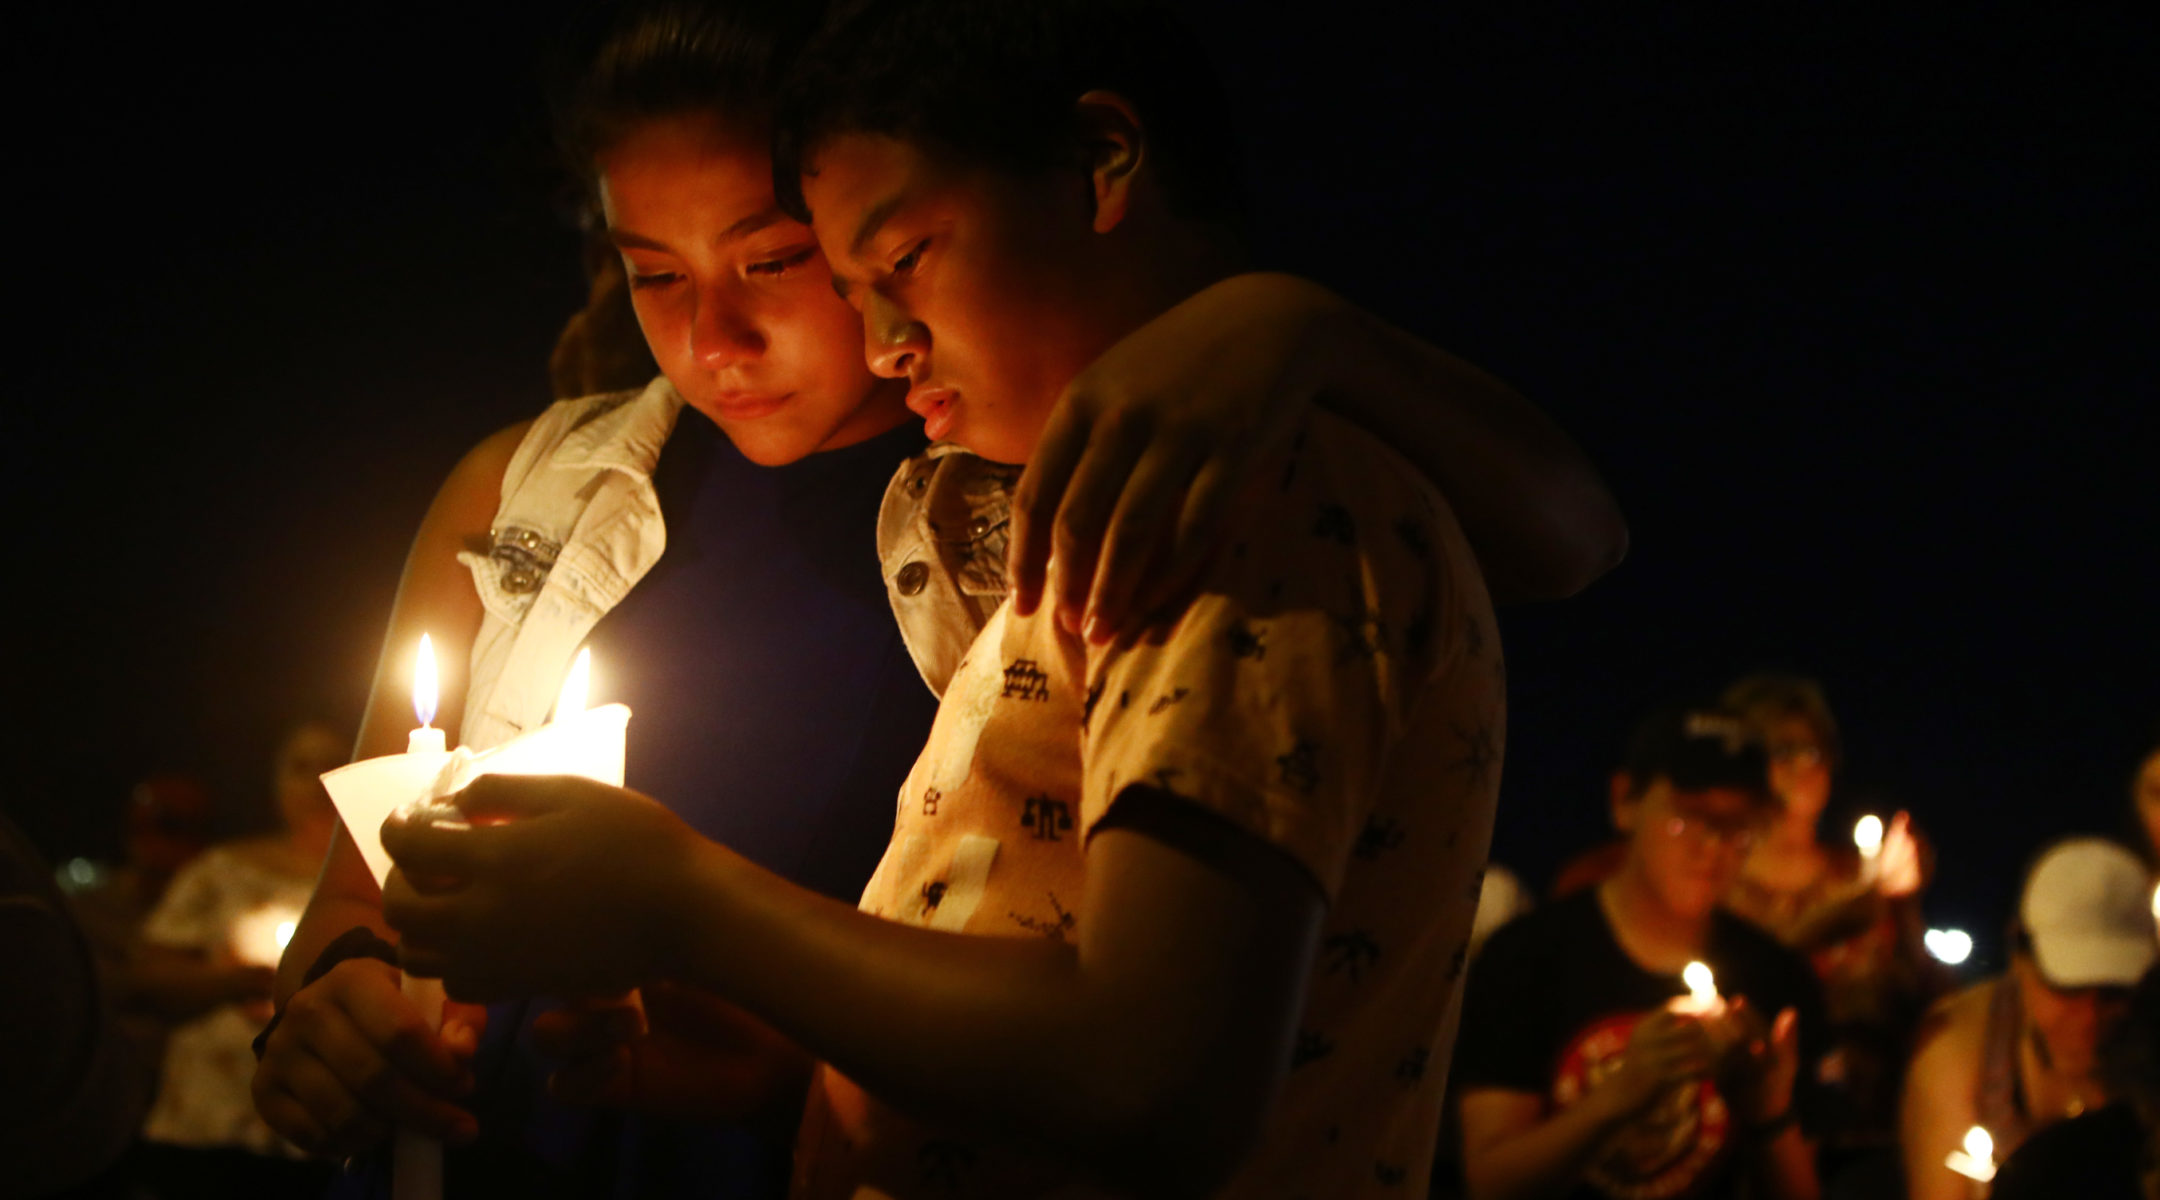 People attend a candlelight prayer vigil in El Paso, Texas, near the scene of an attack that left 22 people dead, Aug. 5, 2019. (Photo/JTA-Mario Tama-Getty Images)